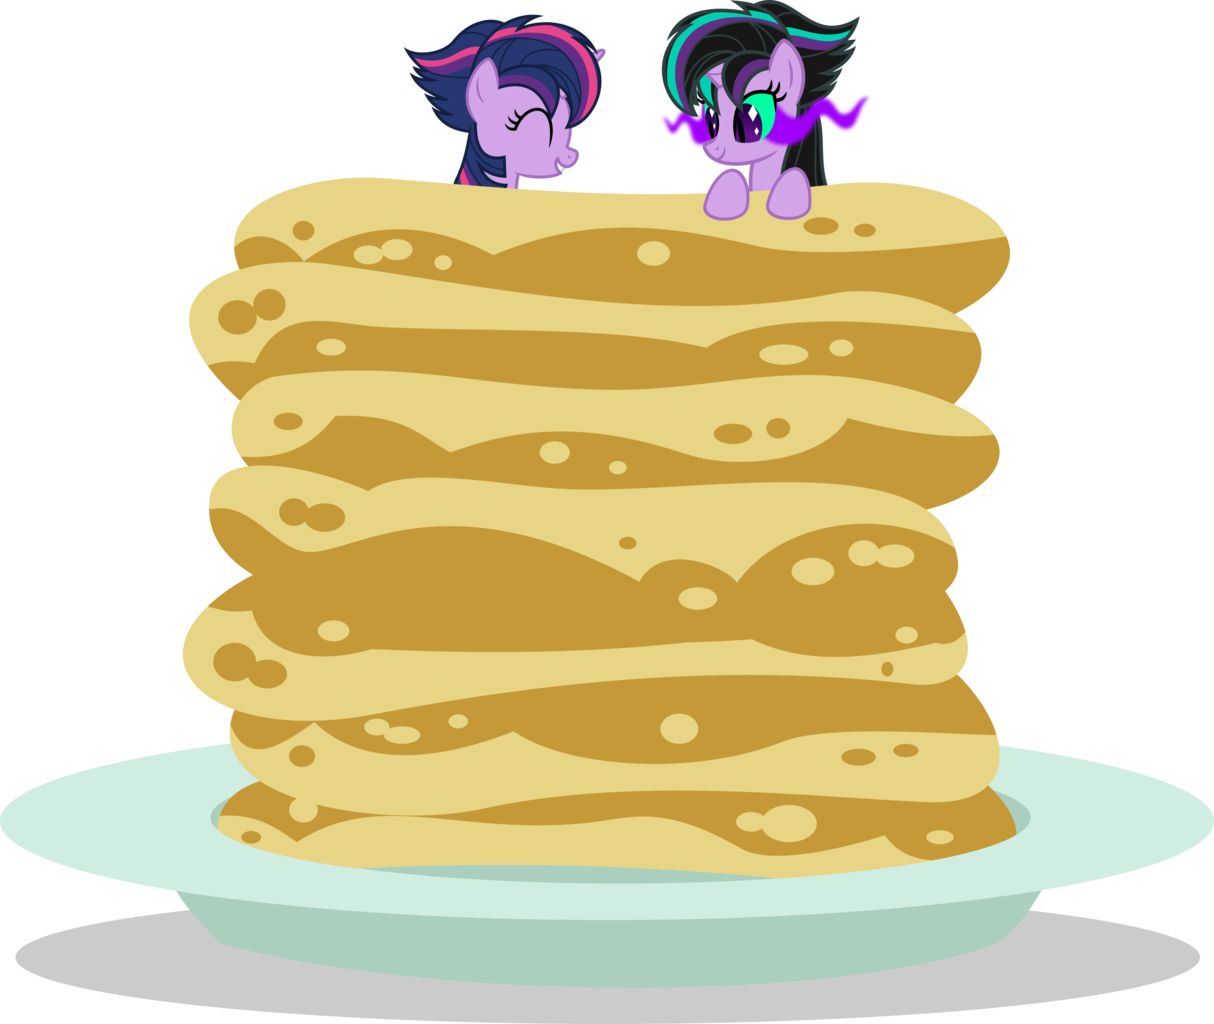 Transparent pancakes above. Alicorn alternate hairstyle